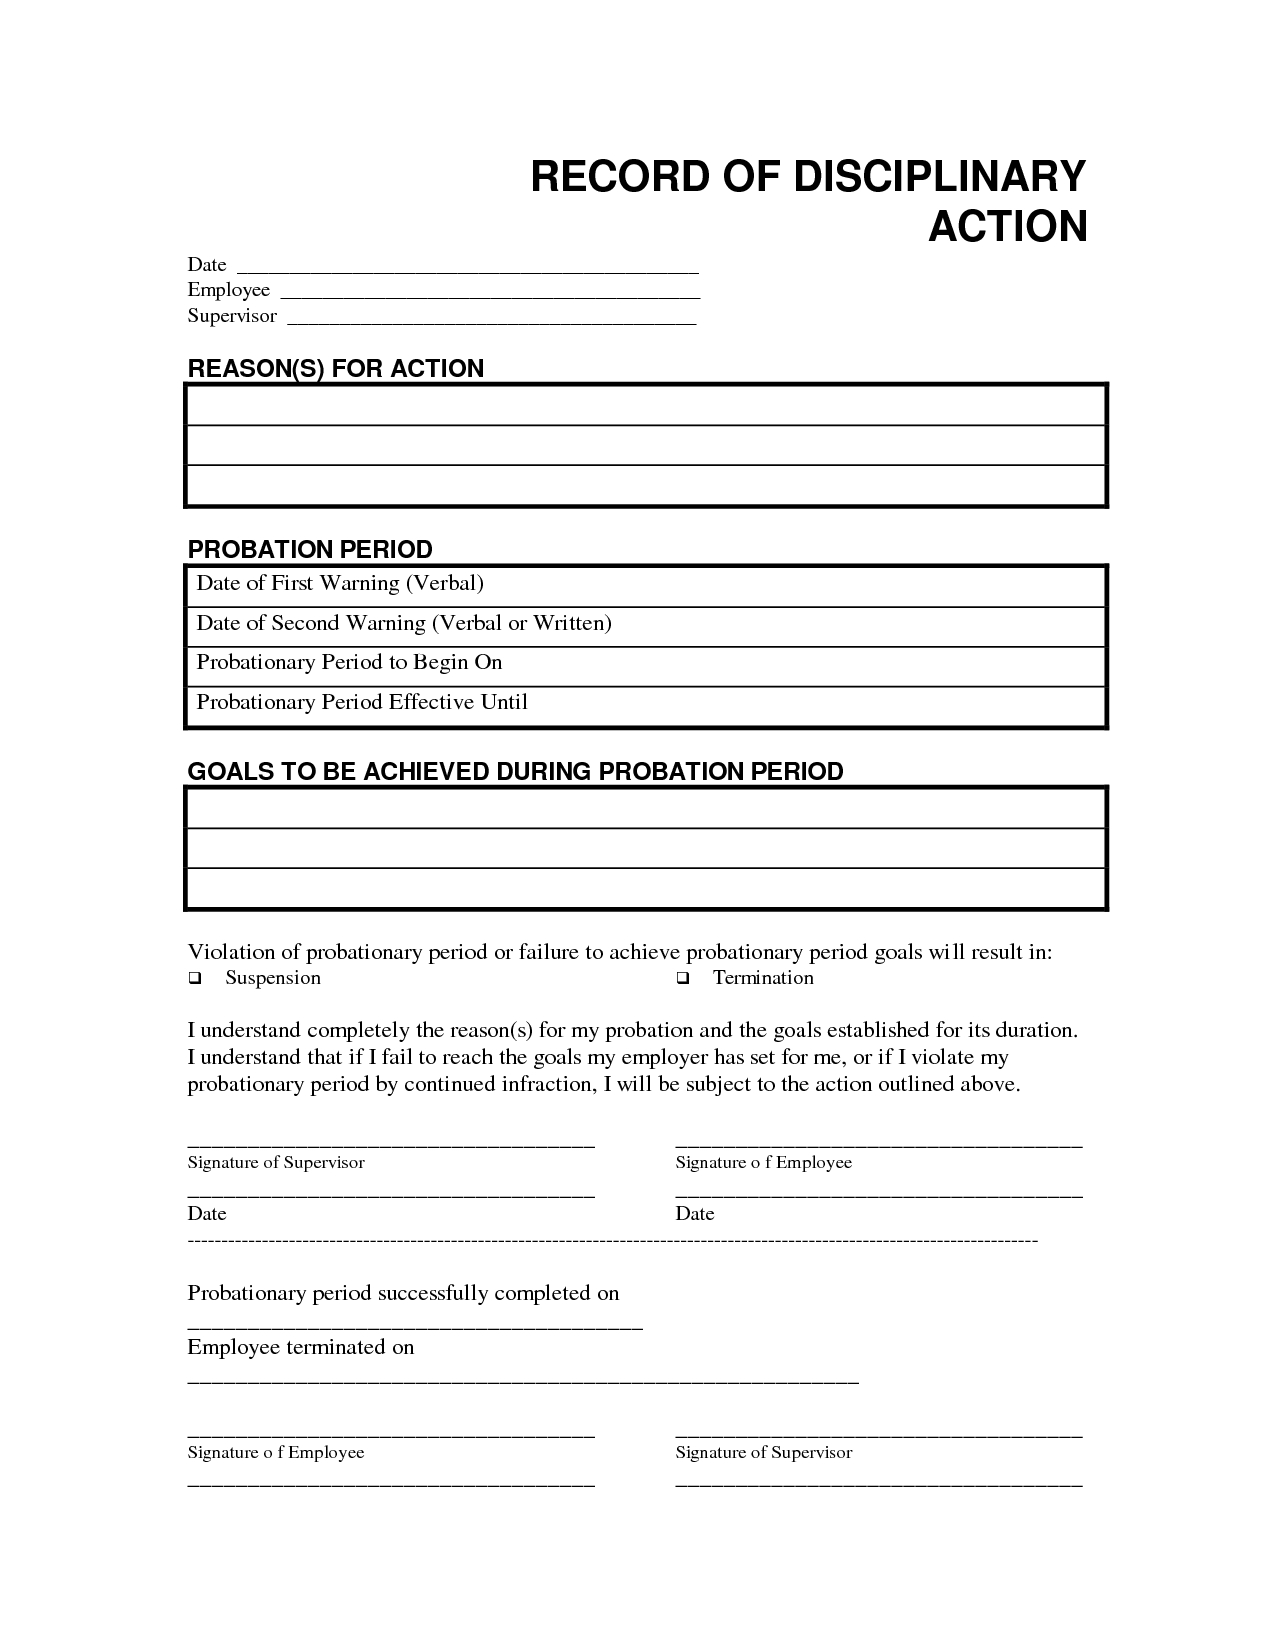 Record Disciplinary Action Free Office Form Template Regarding Word Employee Suggestion Form Template